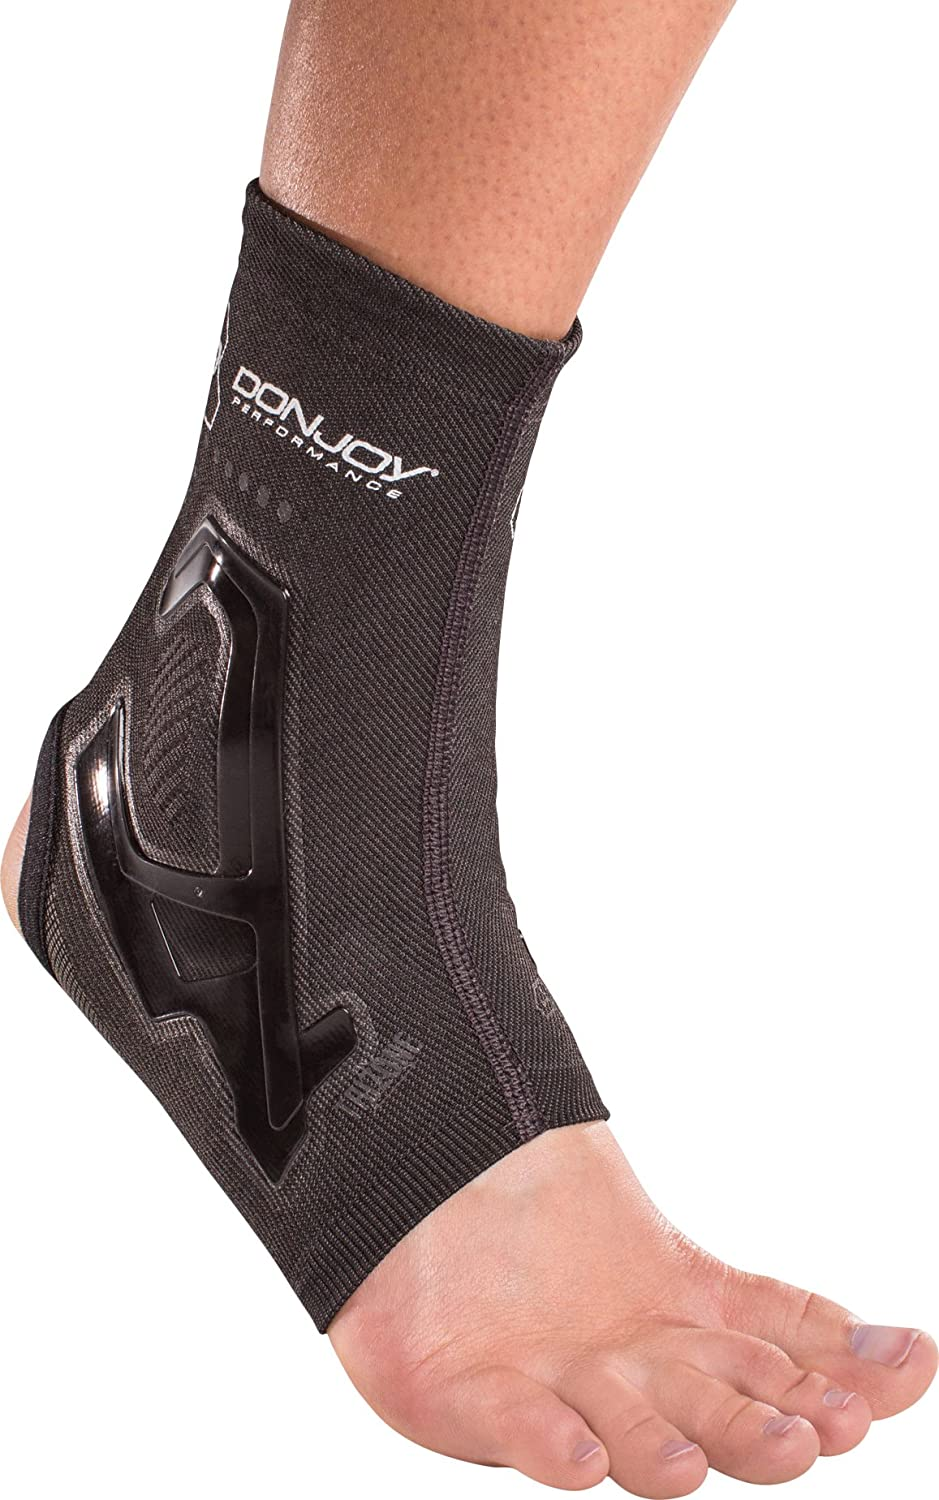 DonJoy Performance TRIZONE Compression: Super sale period limited Brace Support online shopping Bla Ankle